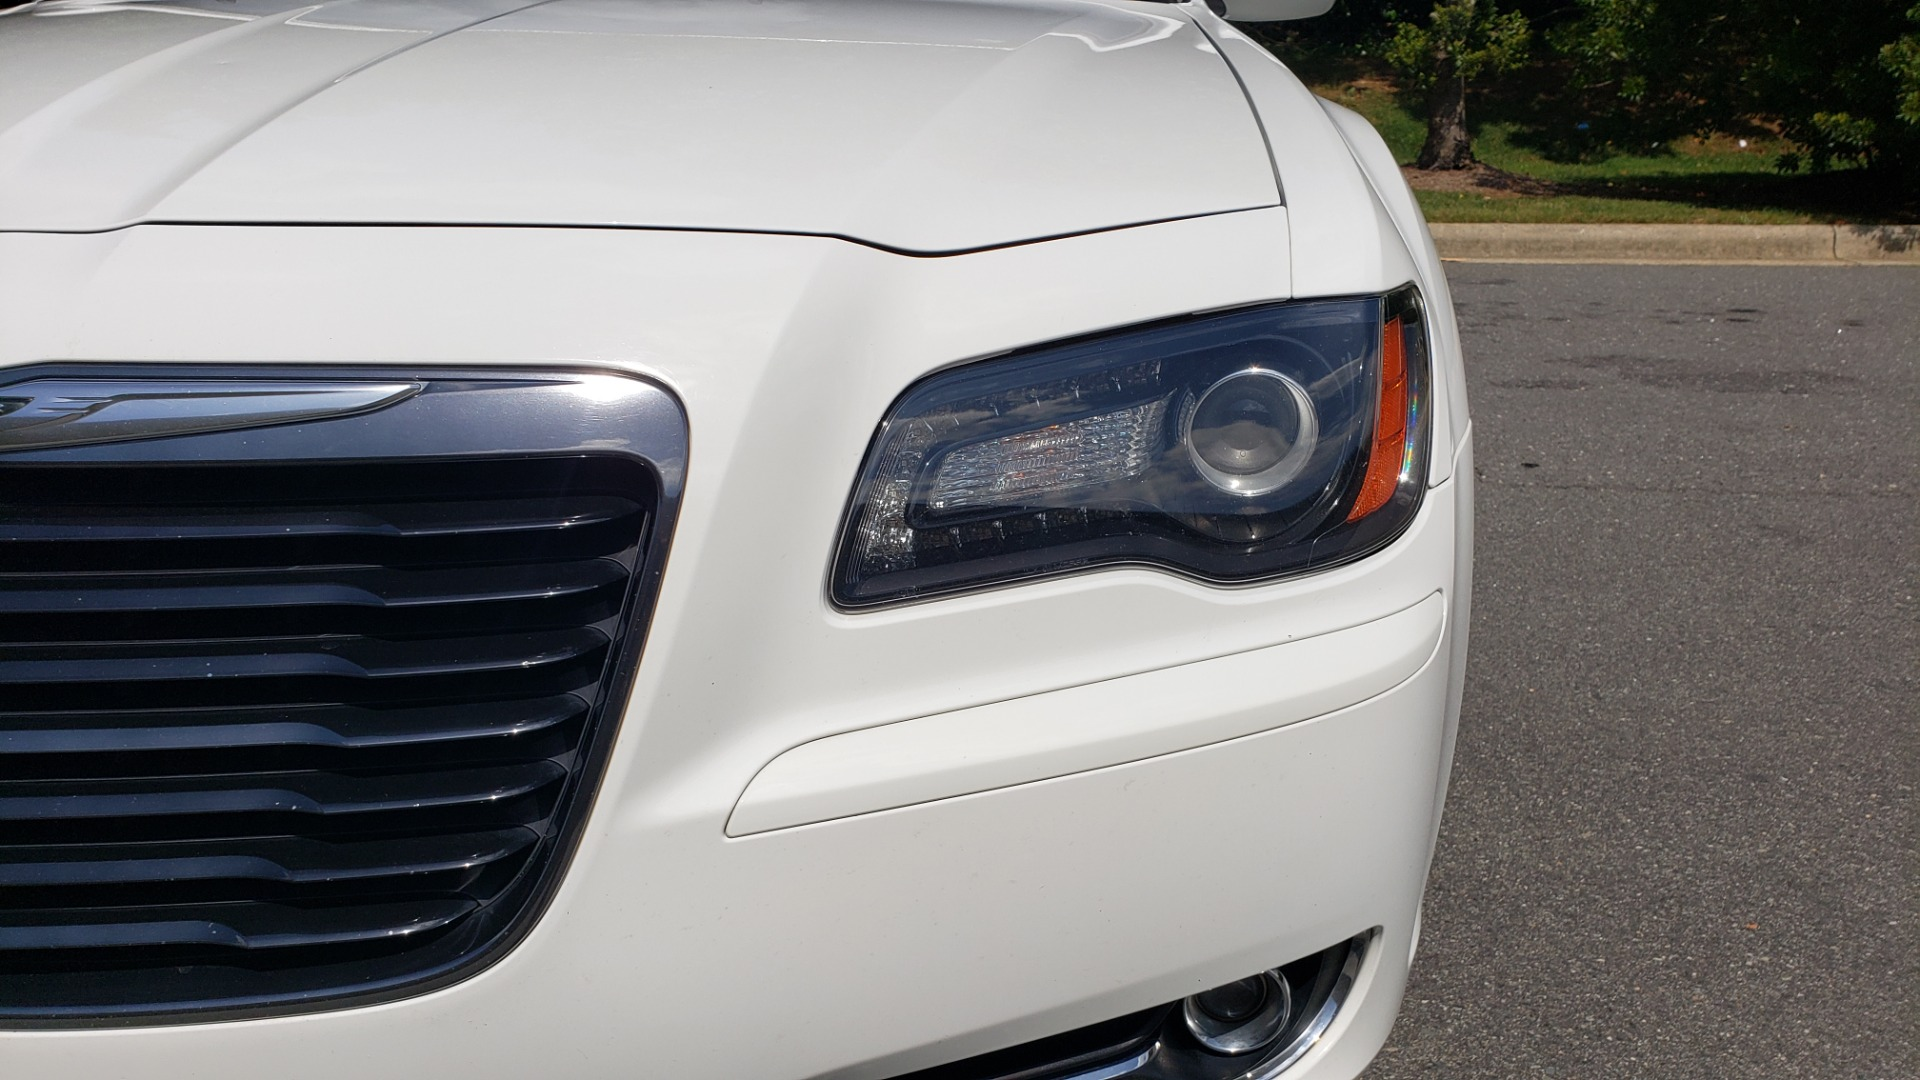 Used 2014 Chrysler 300 S / AWD / NAV / PANO-ROOF / HTD STS / BEATS SOUND / REARVIEW for sale Sold at Formula Imports in Charlotte NC 28227 20